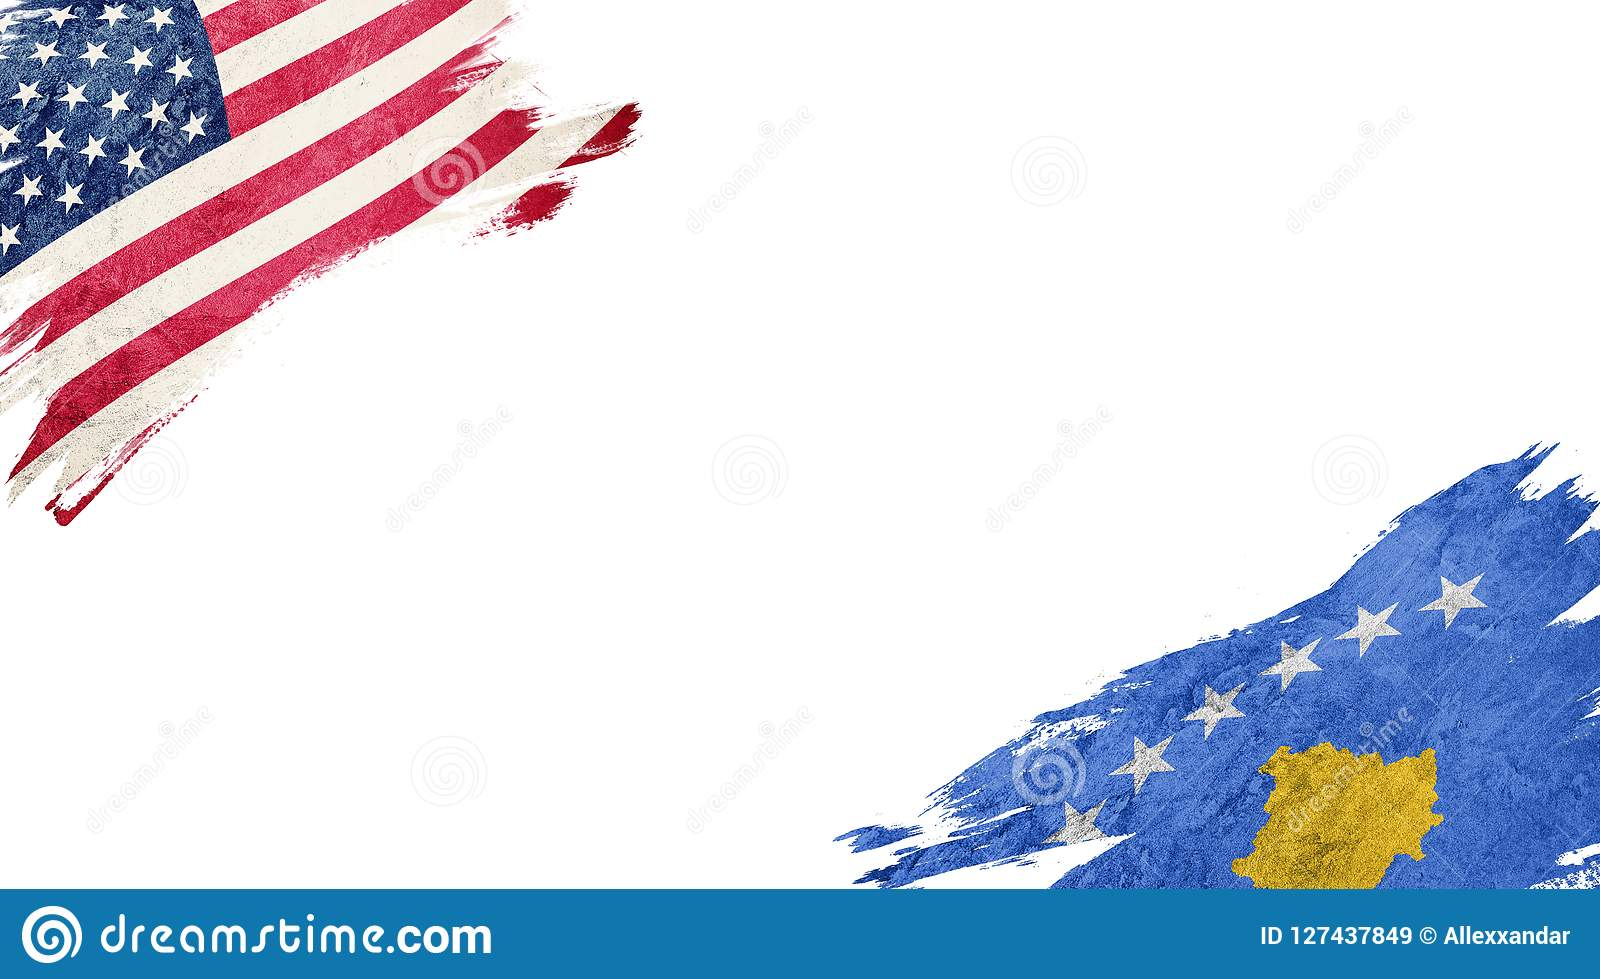 Flags Of USA And Kosovo On White Background Stock Illustration ... on antigua and barbuda on the map, central african republic on the map, the persian gulf on the map, sao tome and principe on the map, ukrain on the map, kiribati on the map, the pentagon on the map, west germany on the map, united arab emirates on the map, marshall islands on the map, dnieper river on the map, french polynesia on the map, isle of man on the map, southwest asia on the map, belgrade on the map, lesotho on the map, estonia on the map, eurasia on the map, belgium on the map, british virgin islands on the map,